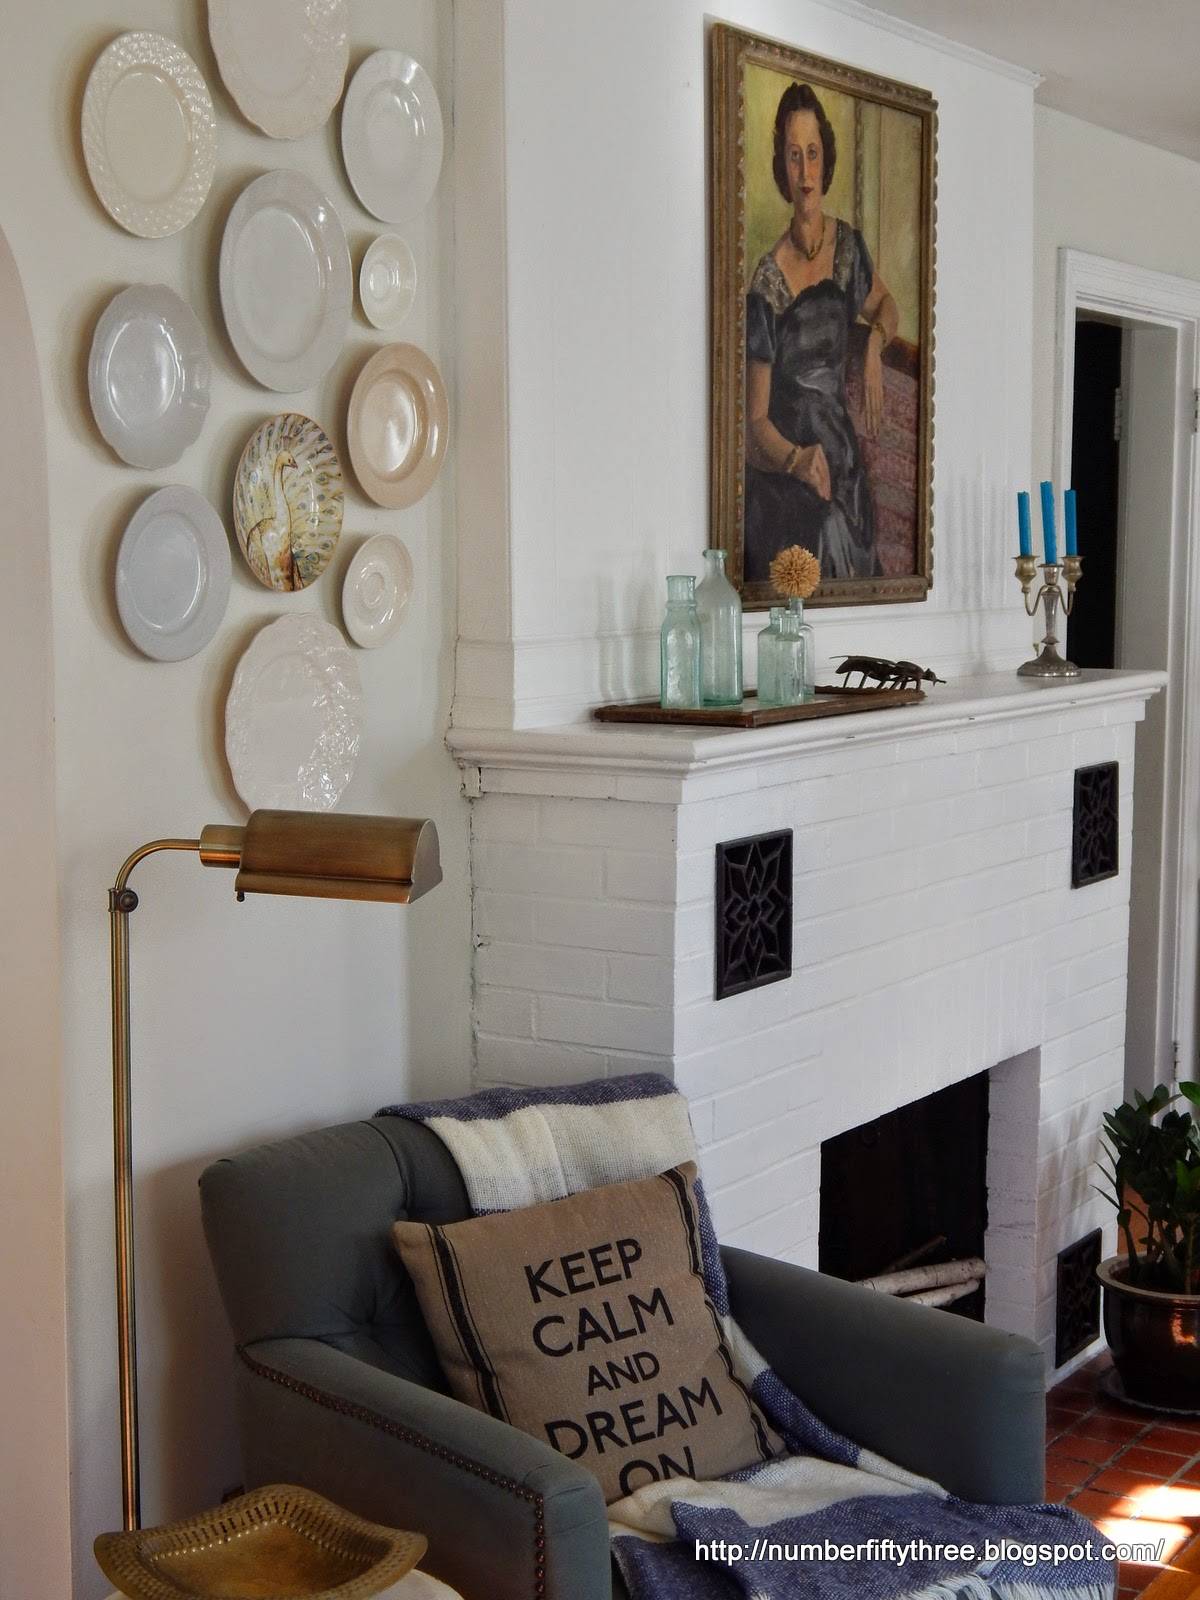 The BEST gallery wall ideas are just a click away! Gather tons of inspiration to help you plan a gallery wall in your own home: whether it's behind a couch, on a staircase or around your tv, you'll get some great ideas on how to decorate your living room walls!